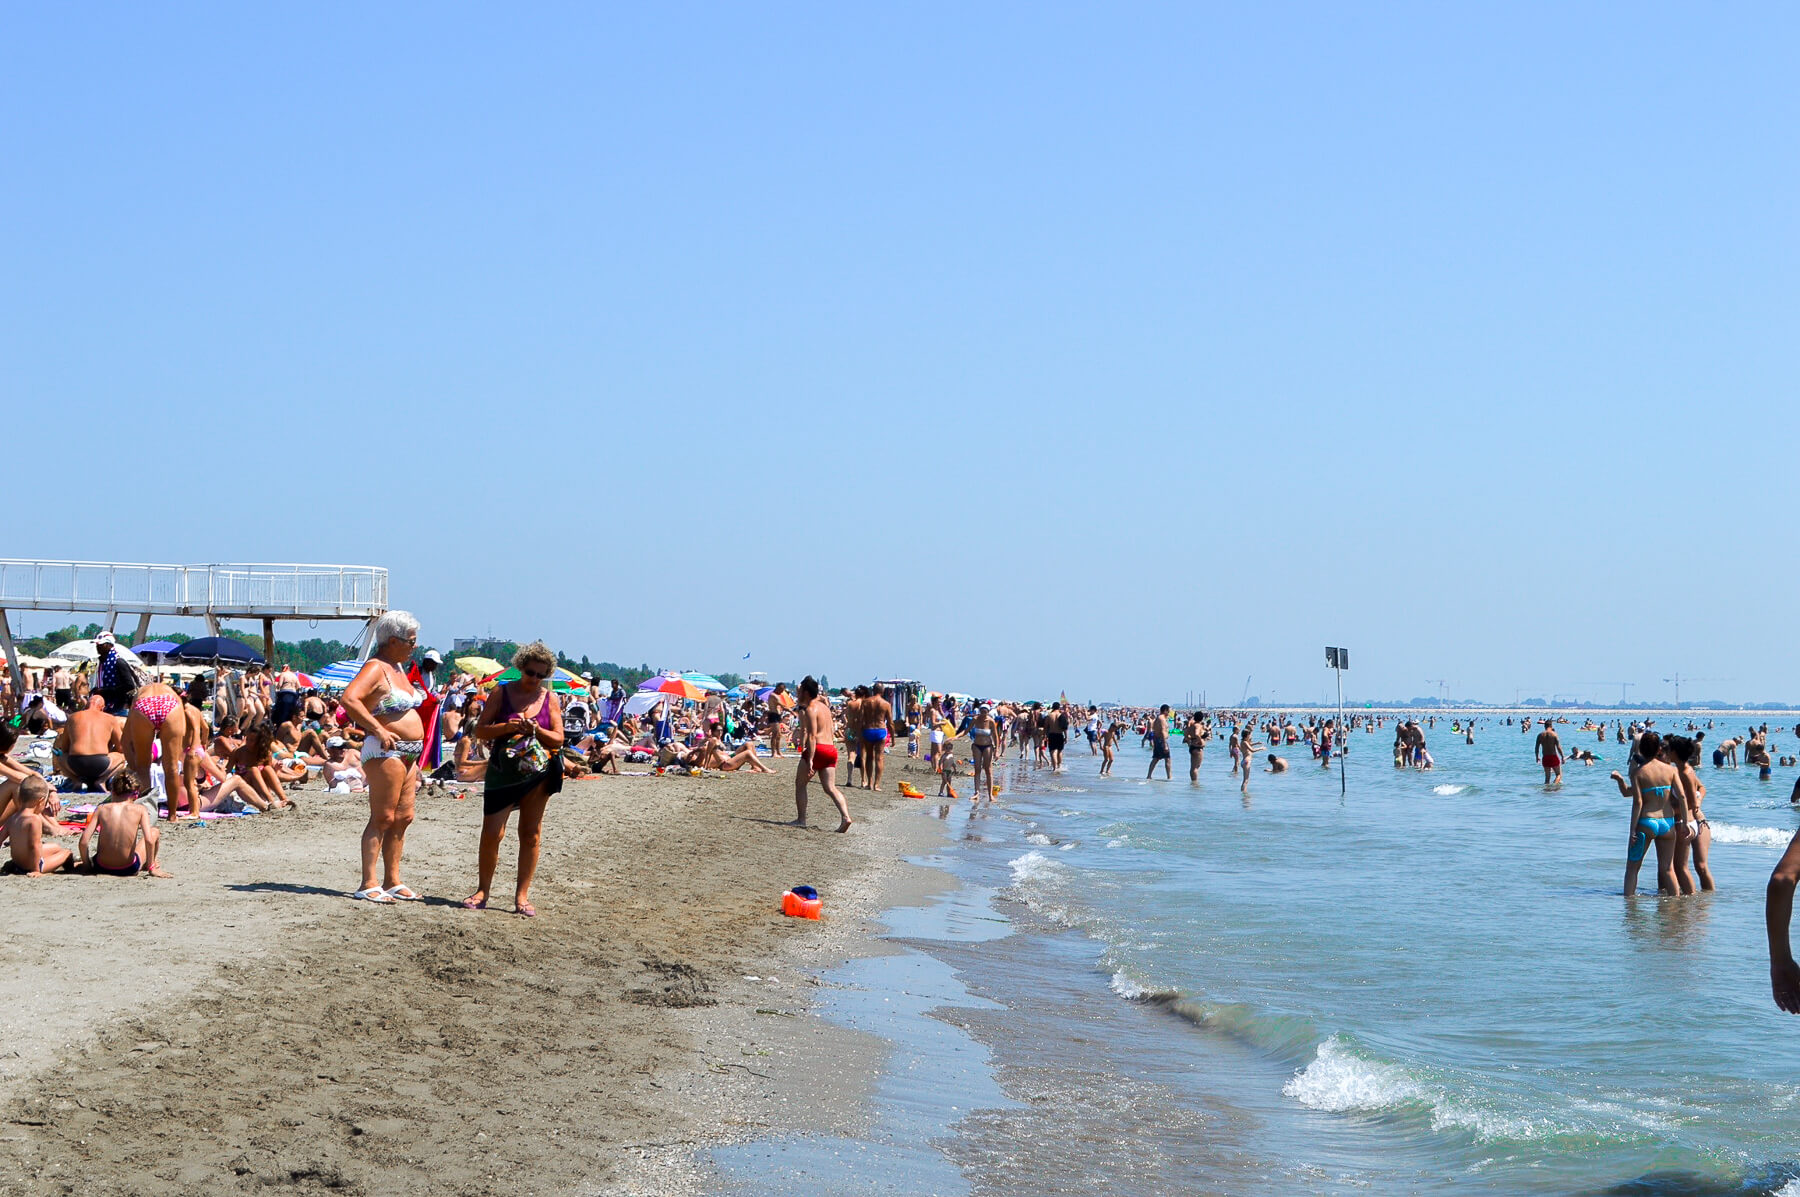 white sand beach and ocean with thousands of people